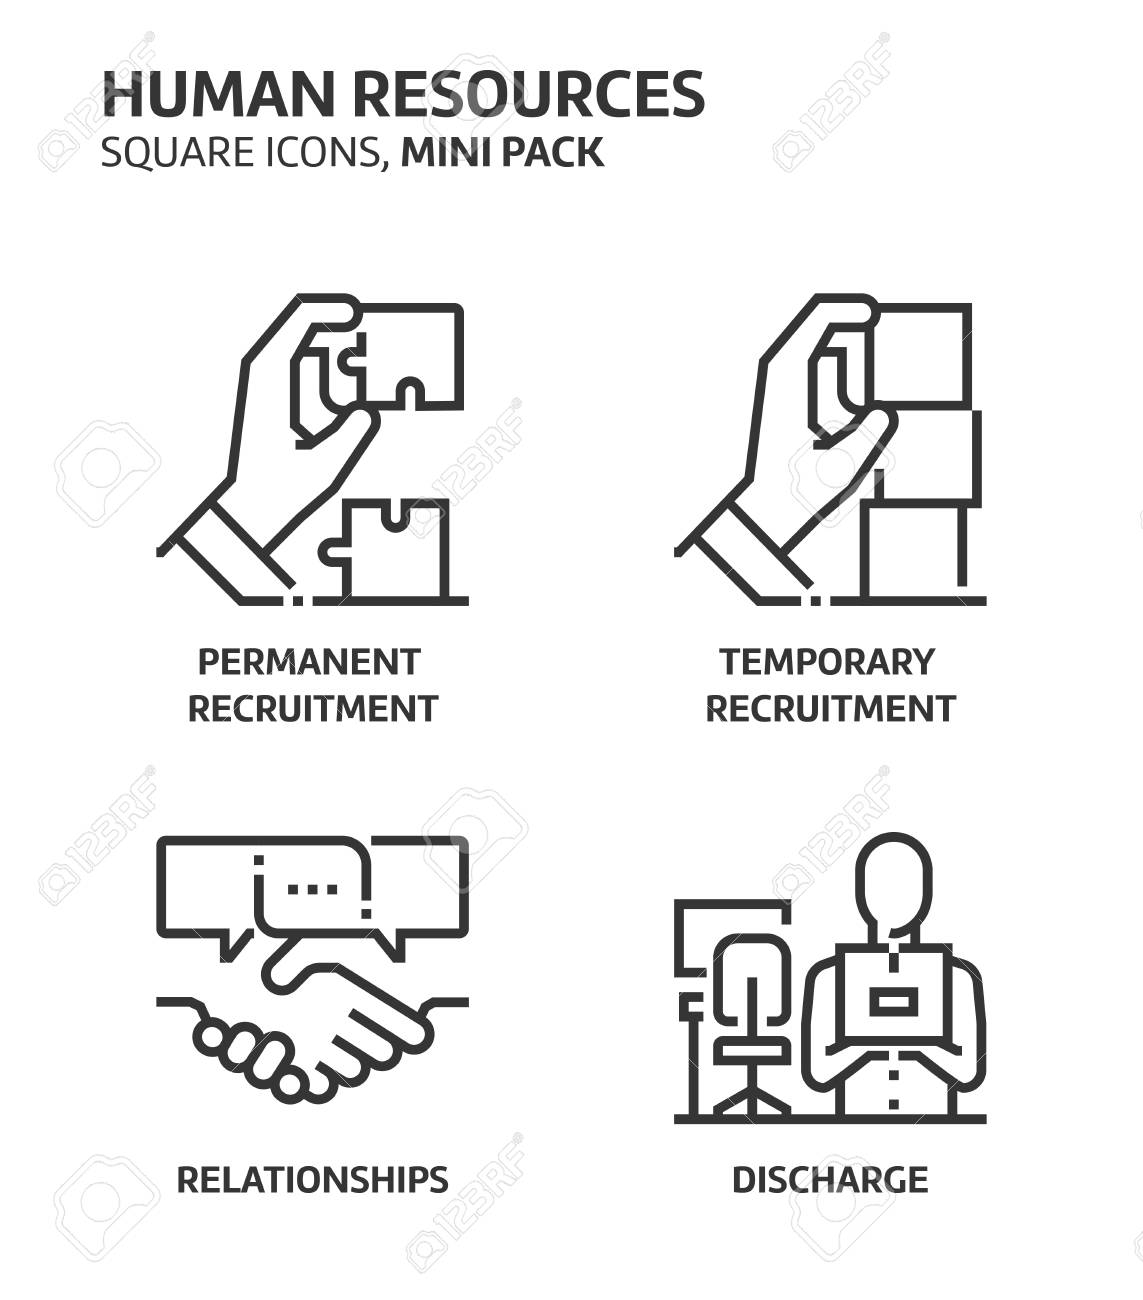 Human resources, square mini icon set. The illustrations are a vector, editable stroke, thirty-two by thirty-two matrix grid, pixel perfect files. Crafted with precision and eye for quality. - 84119517